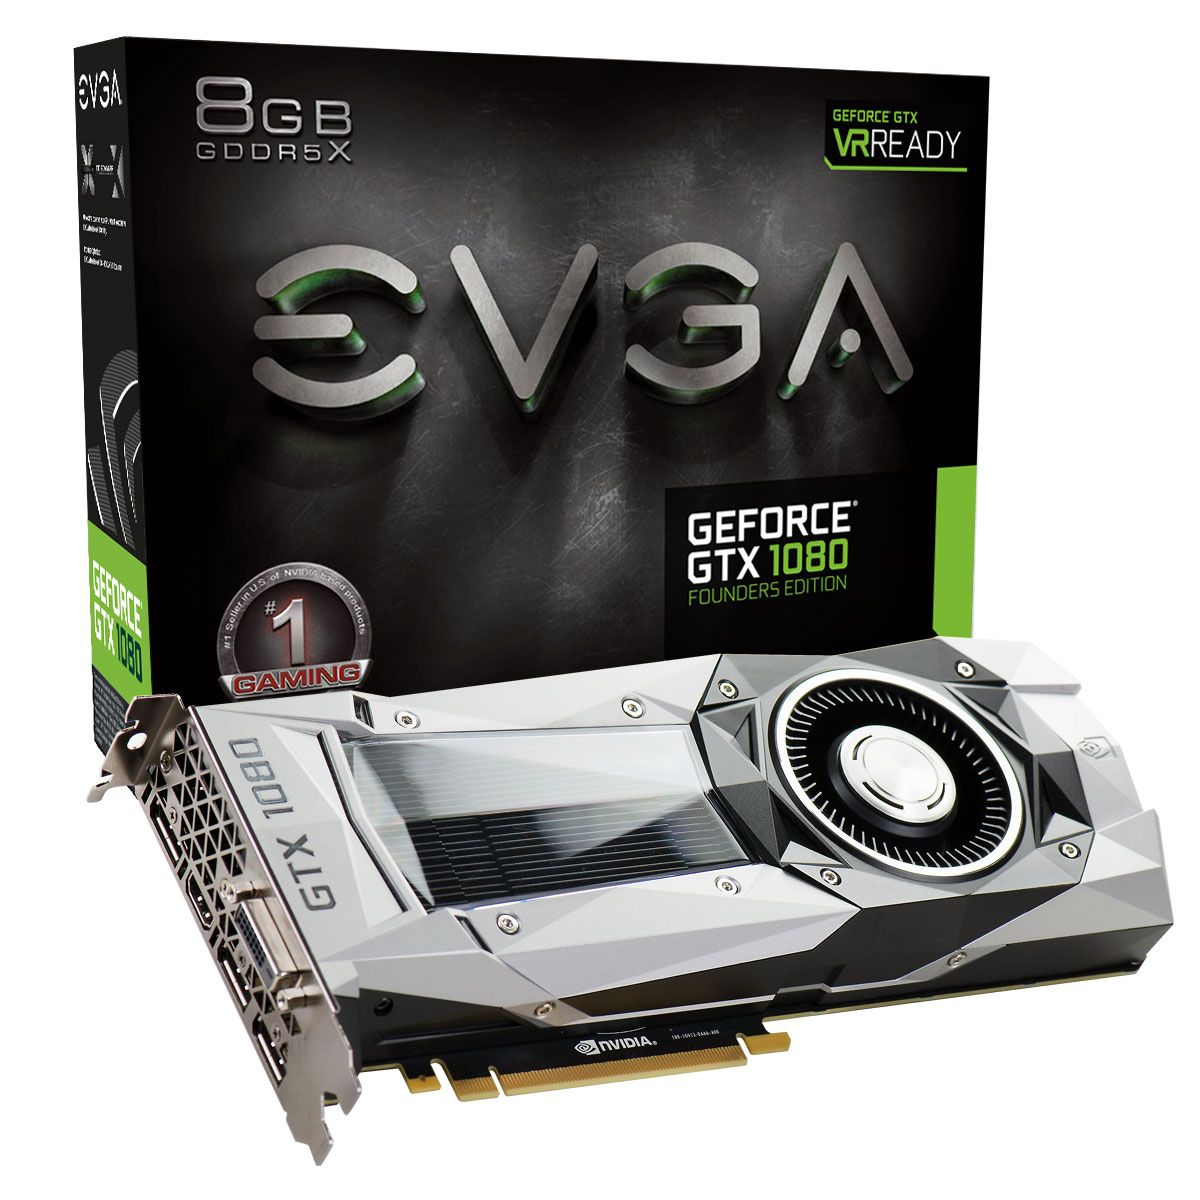 sneeky mocha likes nvidia evga geforce gtx 1080 founders edition rh pinterest ie MSI Graphic Card Price Computer Graphics Card